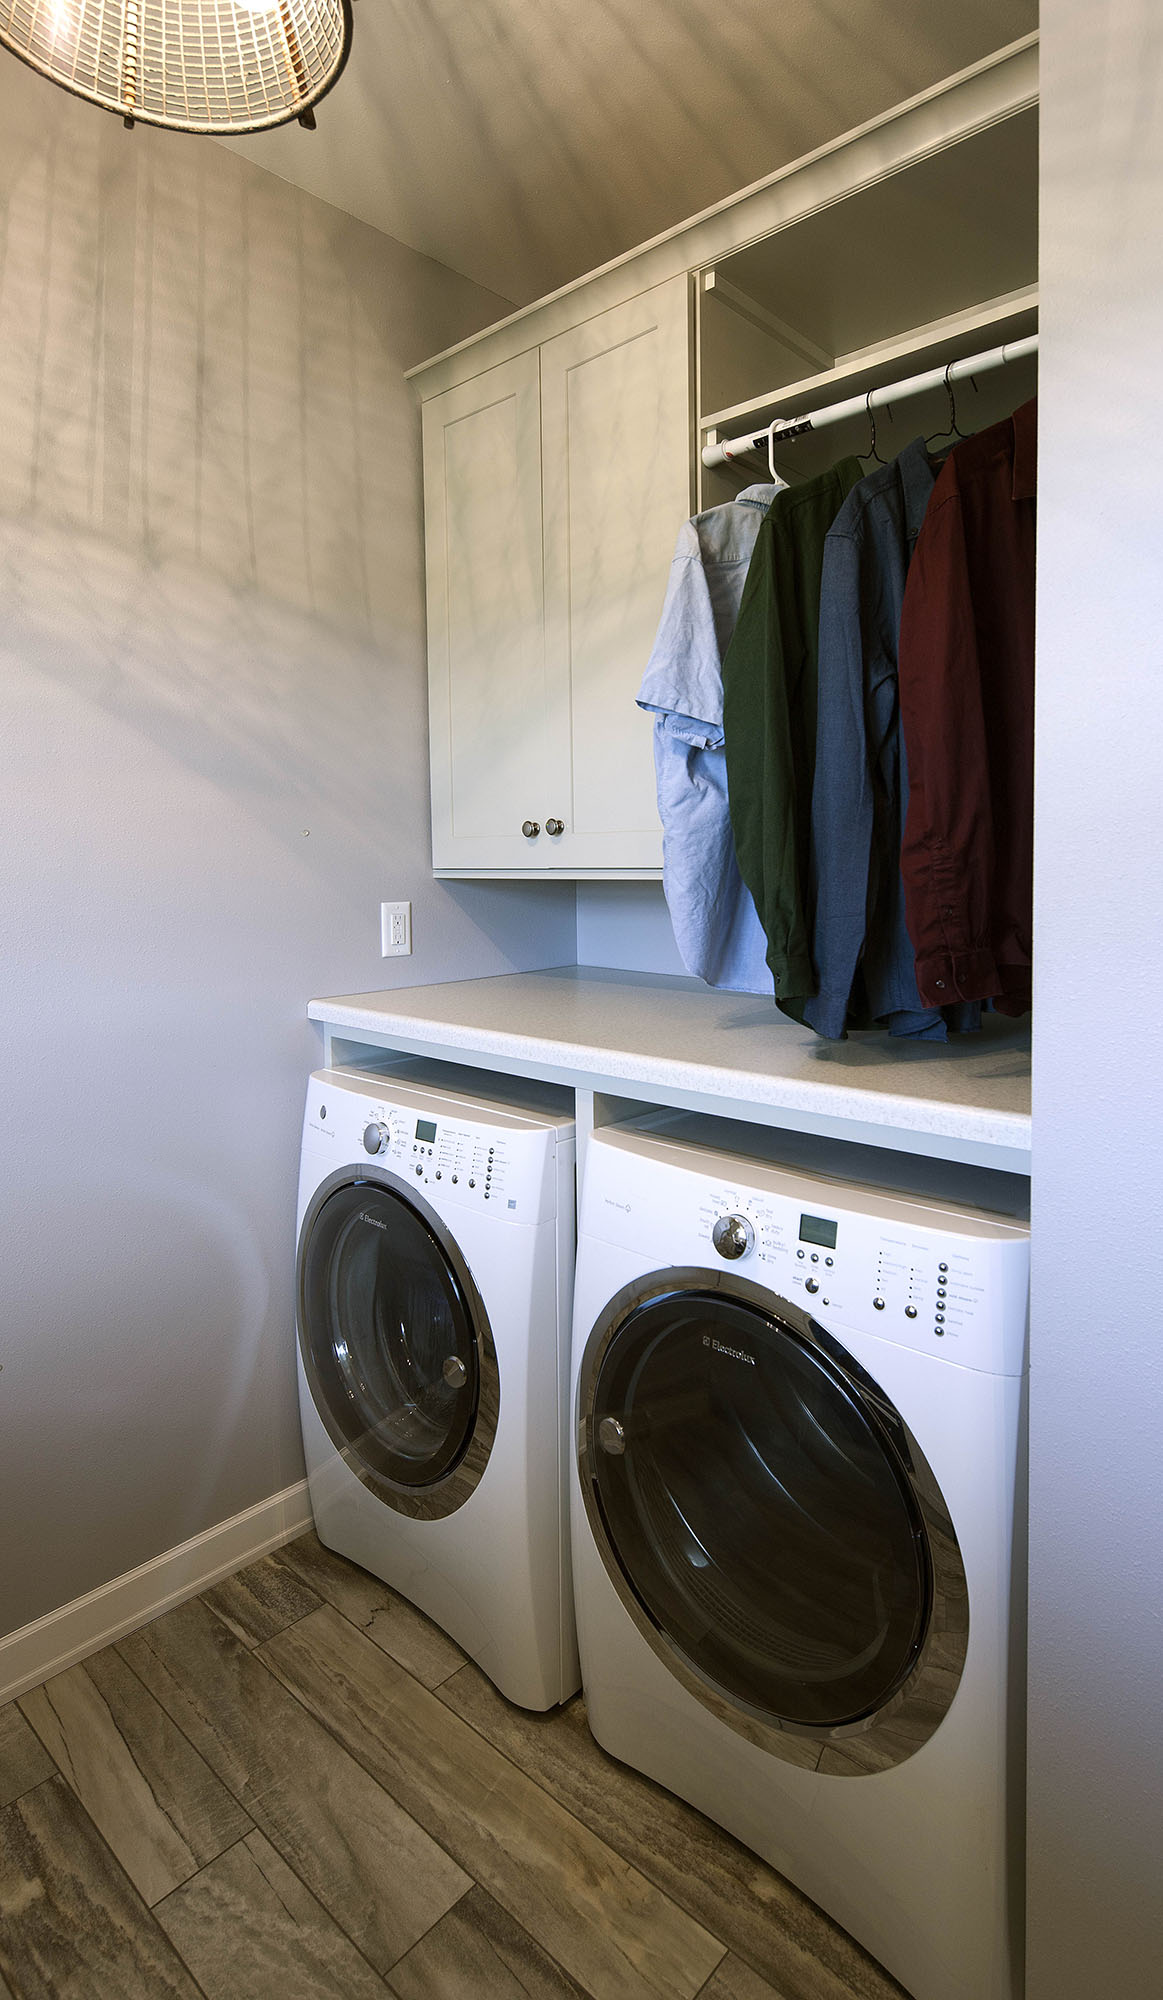 Painted laundry room cabinets in Oyster by Showplace Cabinetry - view 2